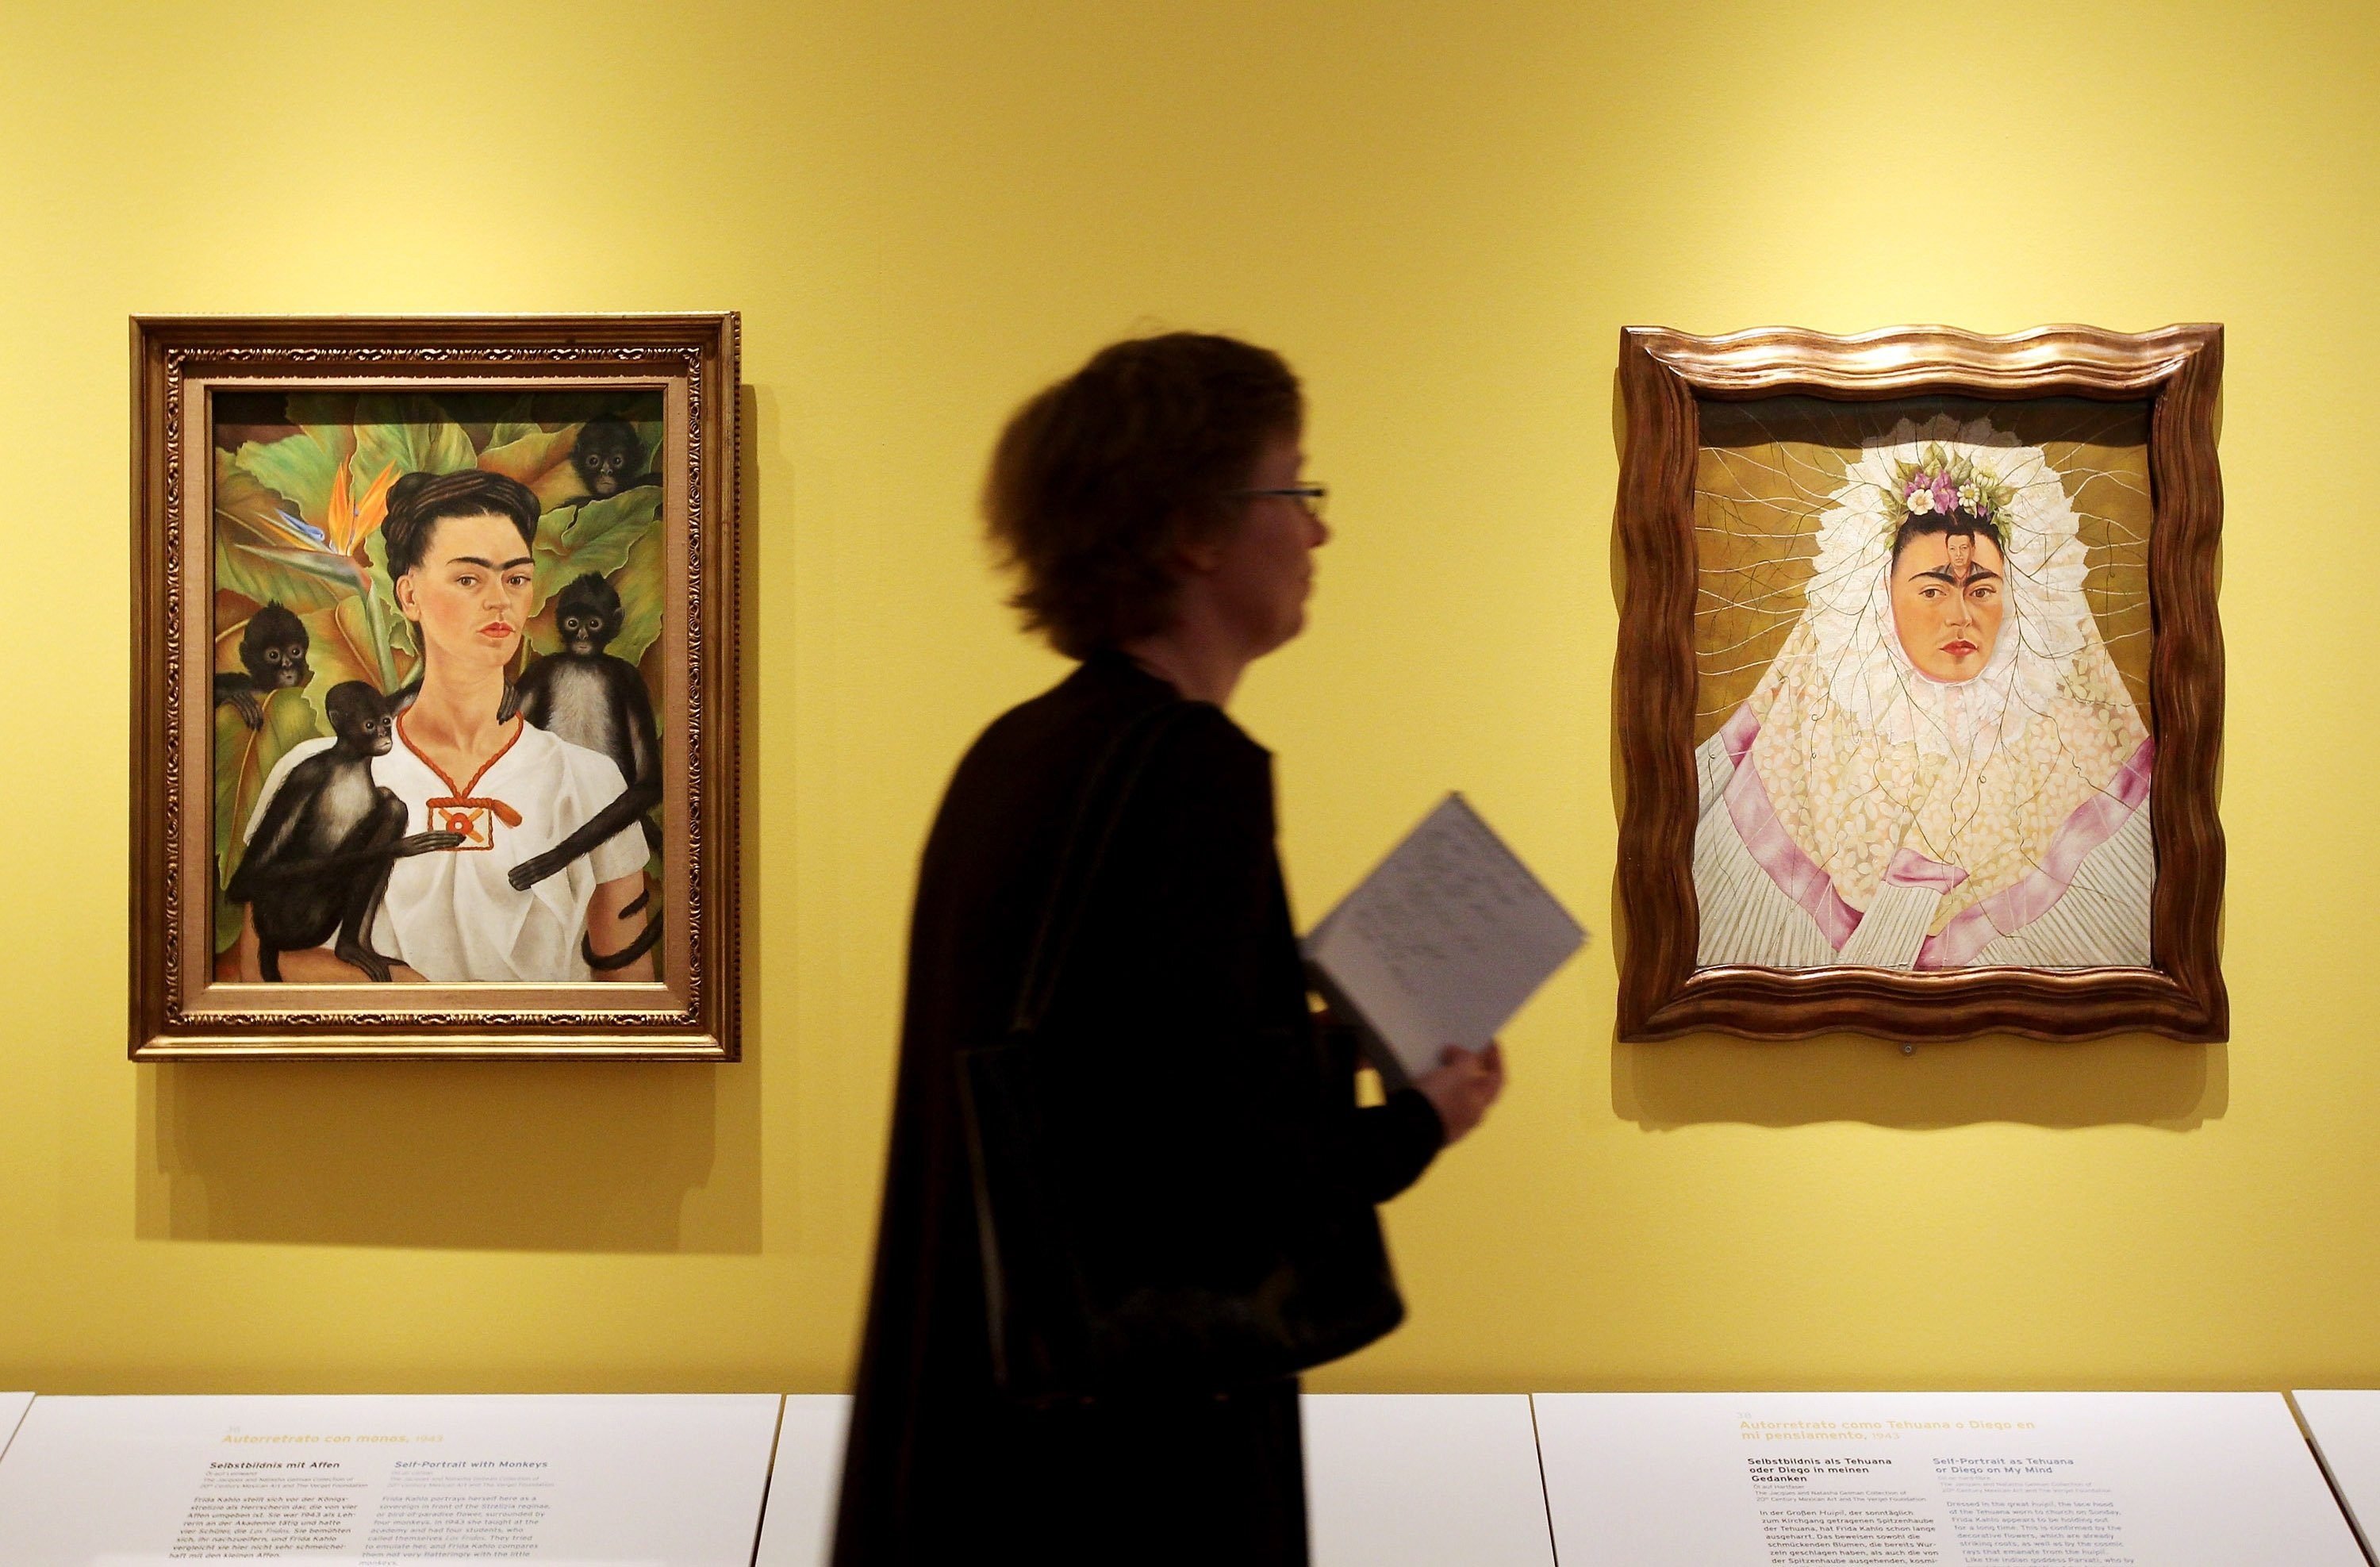 A visitor looks at self-portraits by Mexican painter Frida Kahlo at the Frida Kahlo Retrospective at Martin-Gropius-Bau, Berlin, Germany, April 29, 2010. (Getty Images)